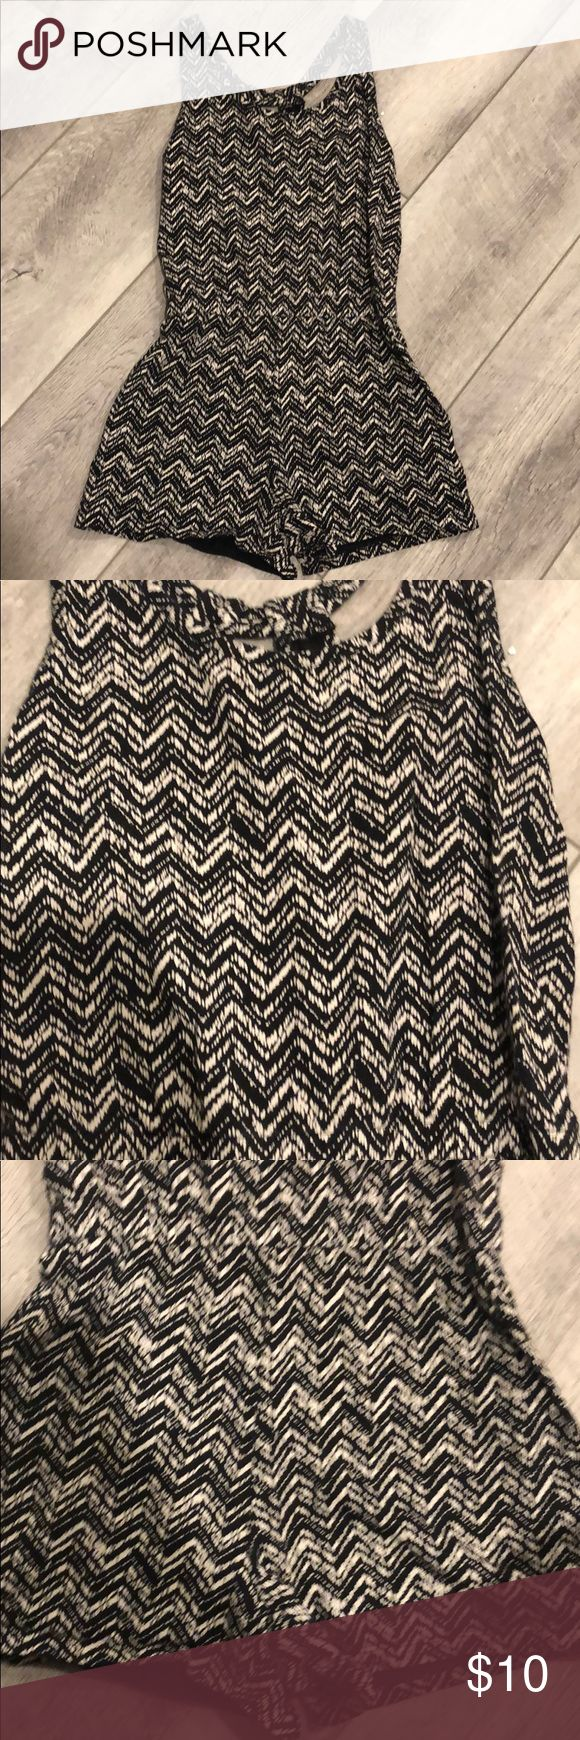 Old navy girls size 8/10 (large)romper | Old navy girls ...